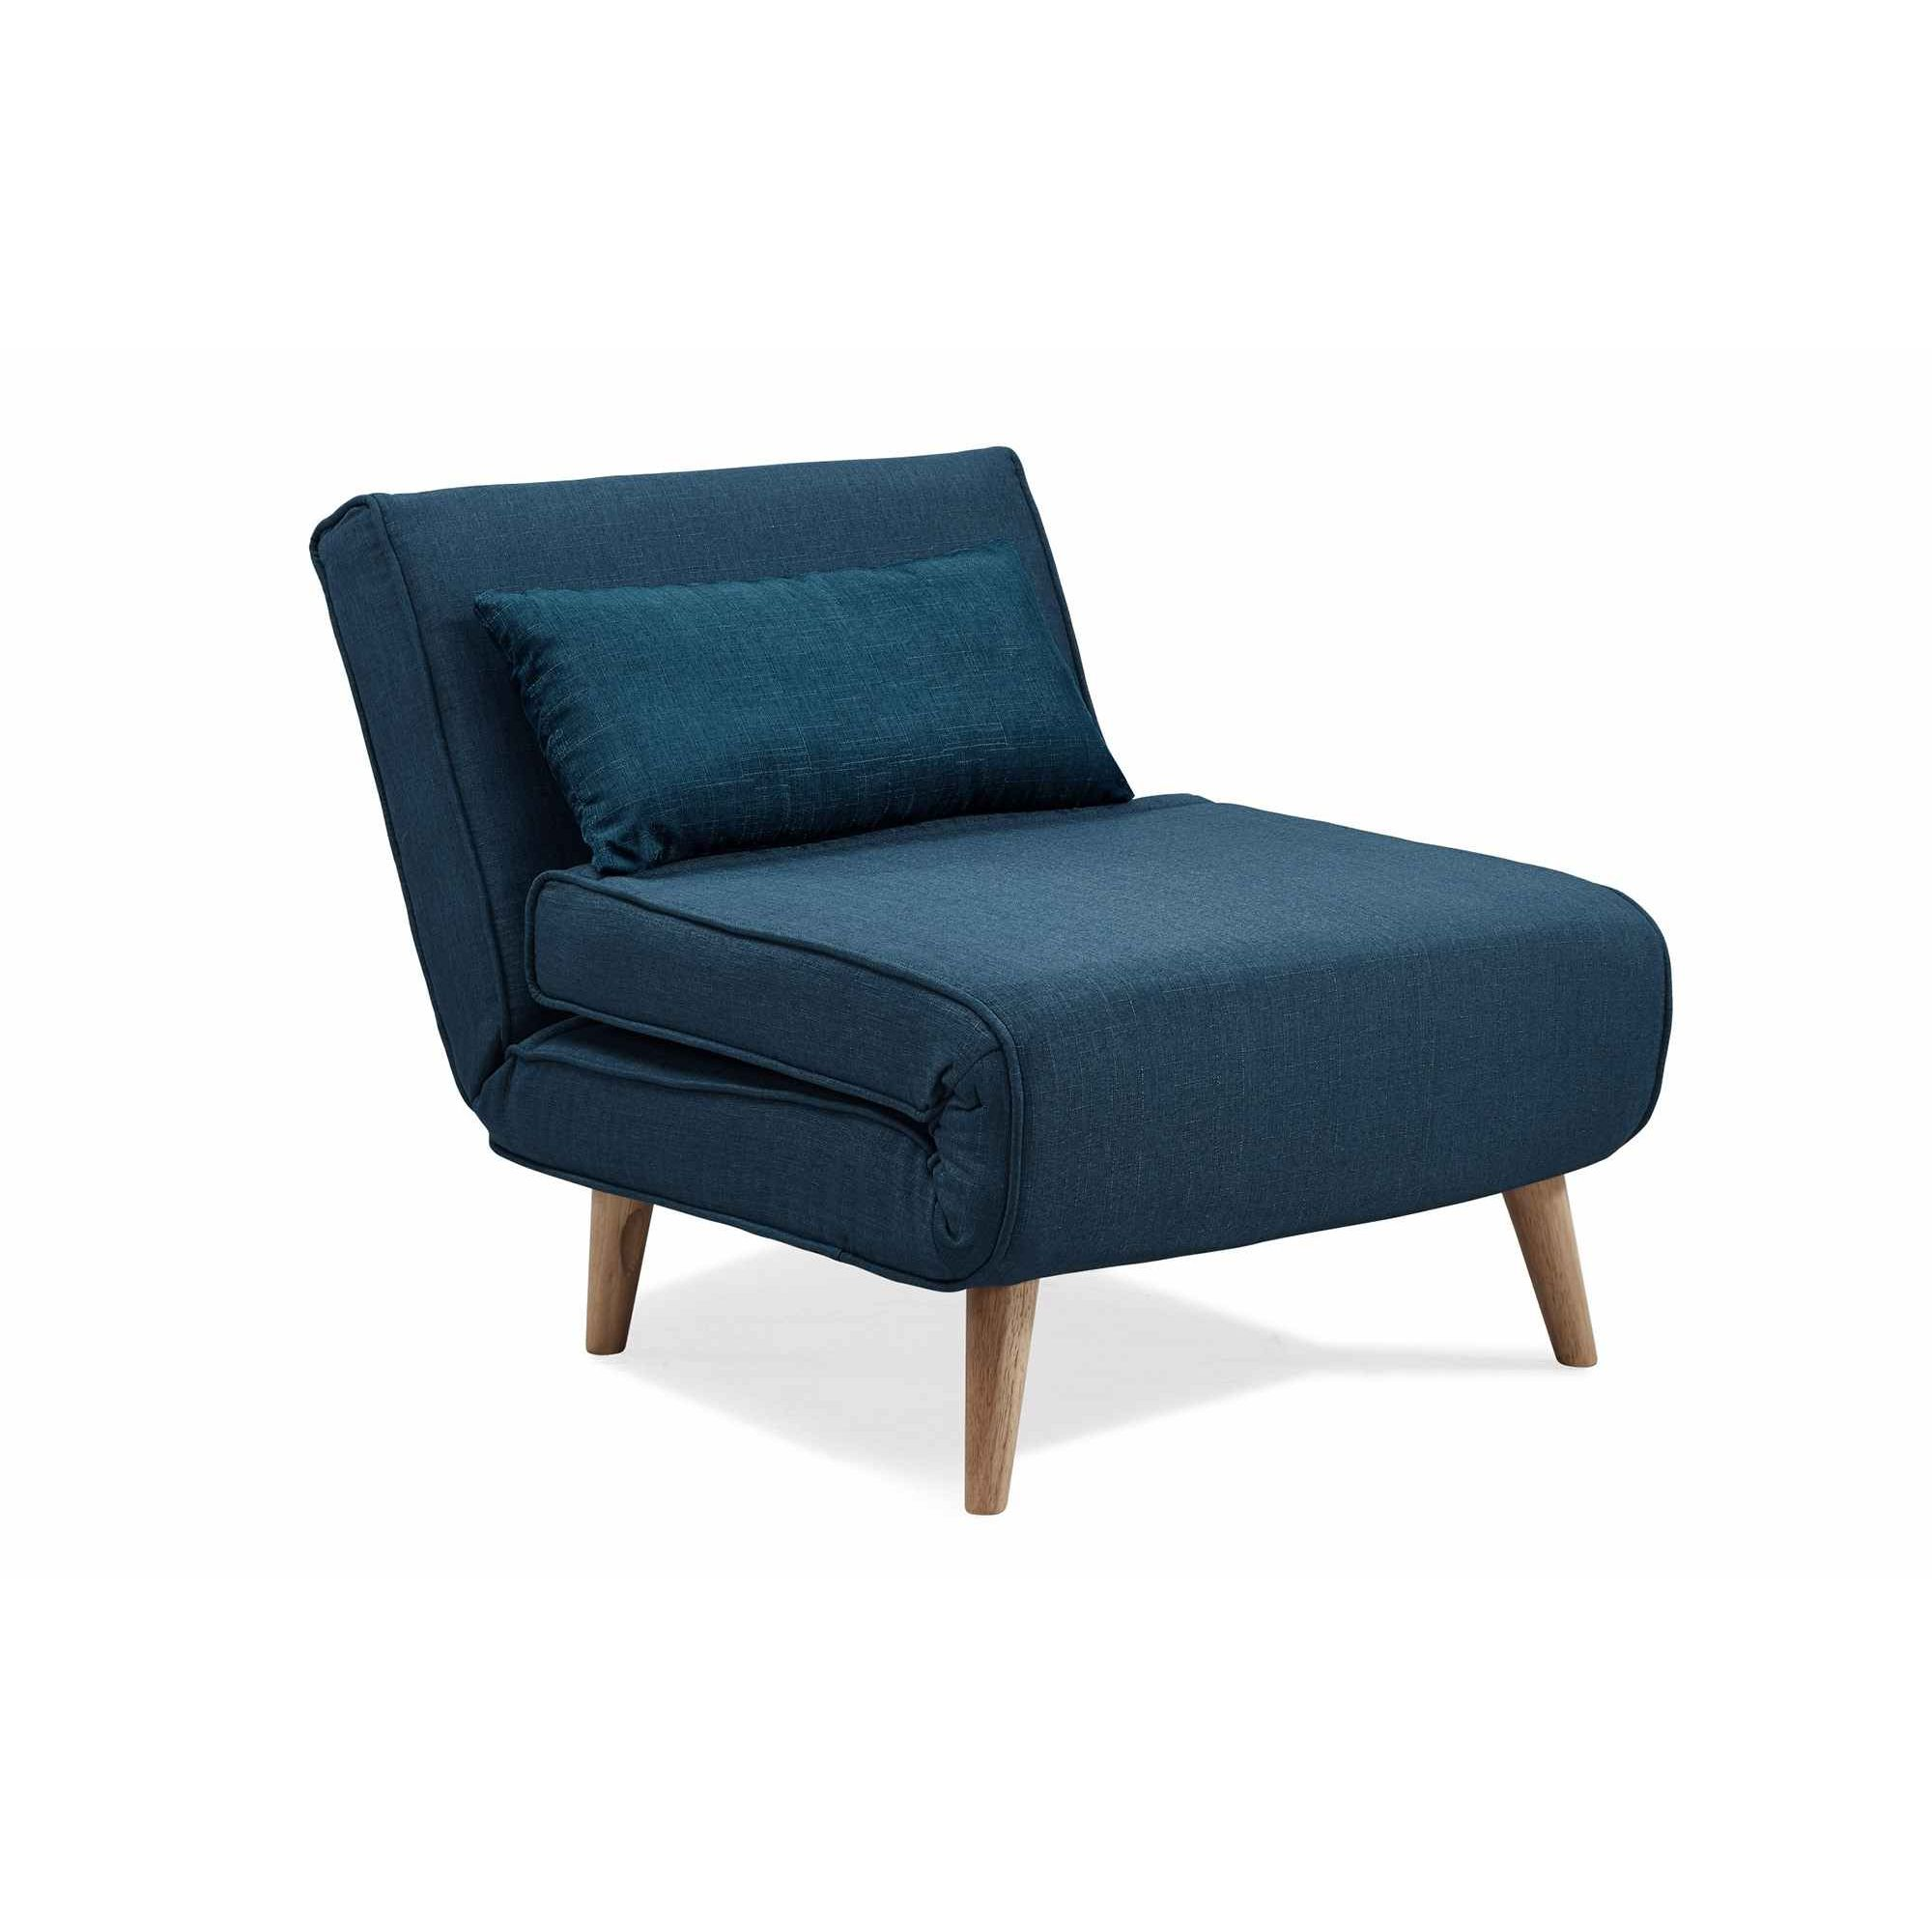 deco in paris 4 fauteuil convertible en tissu bleu tonka fauteil lit bleu tonka. Black Bedroom Furniture Sets. Home Design Ideas